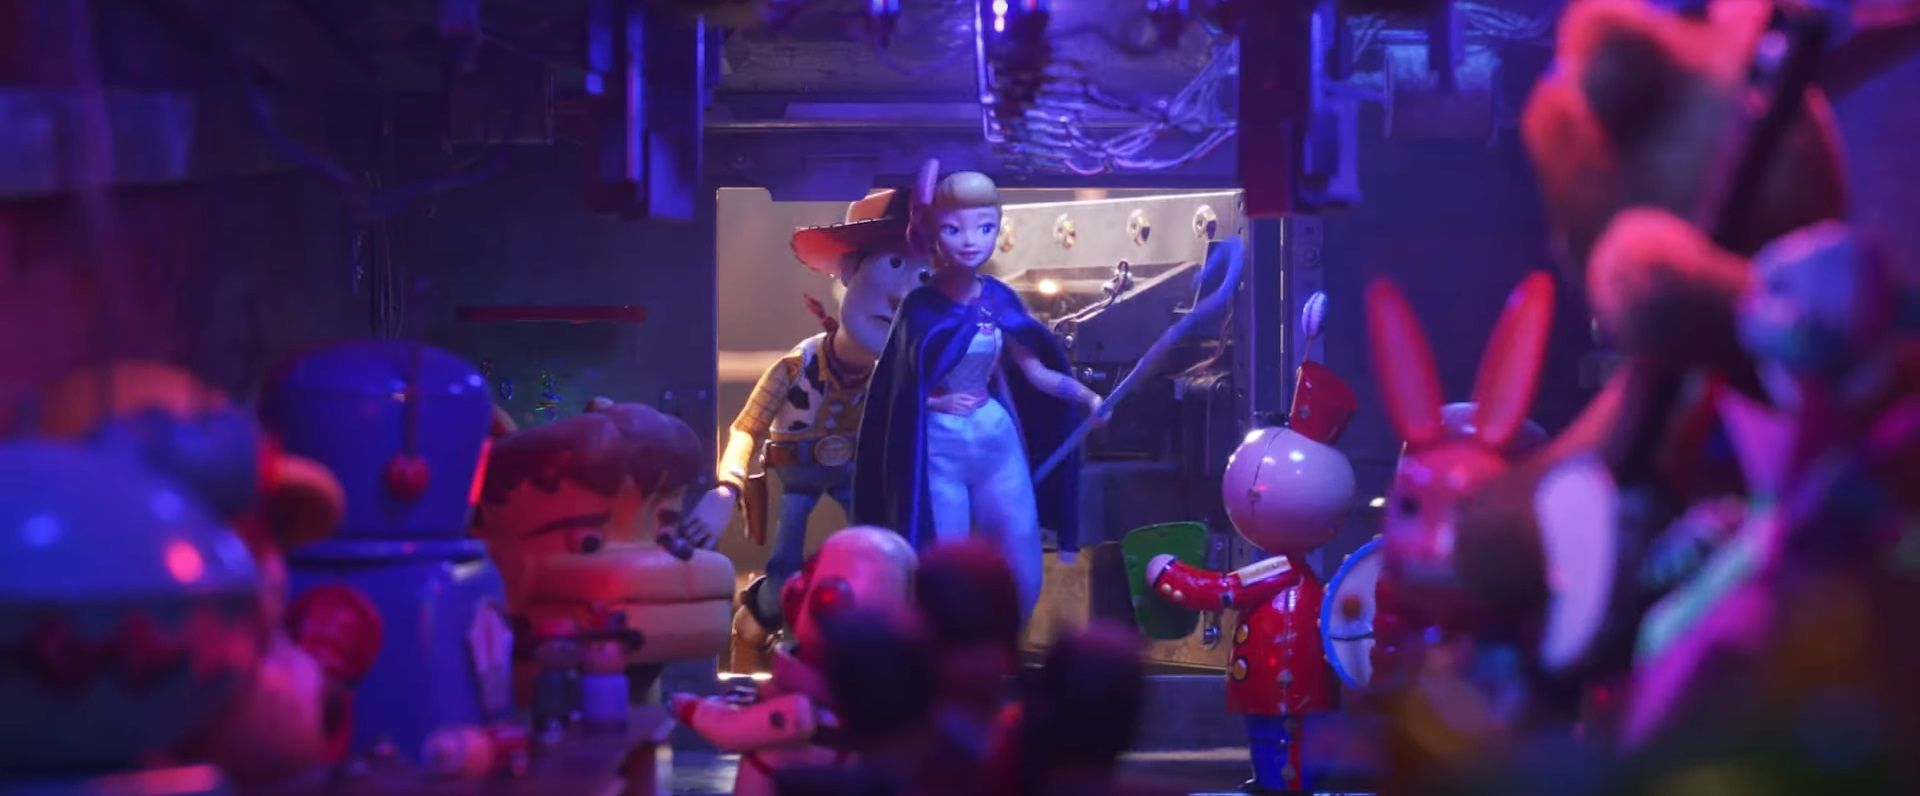 Toy Story 4 Check Out Nearly 50 Hi Res Screenshots From The Revealing First Full Length Trailer In 2020 With Images Toy Story New Movies Movie Photo